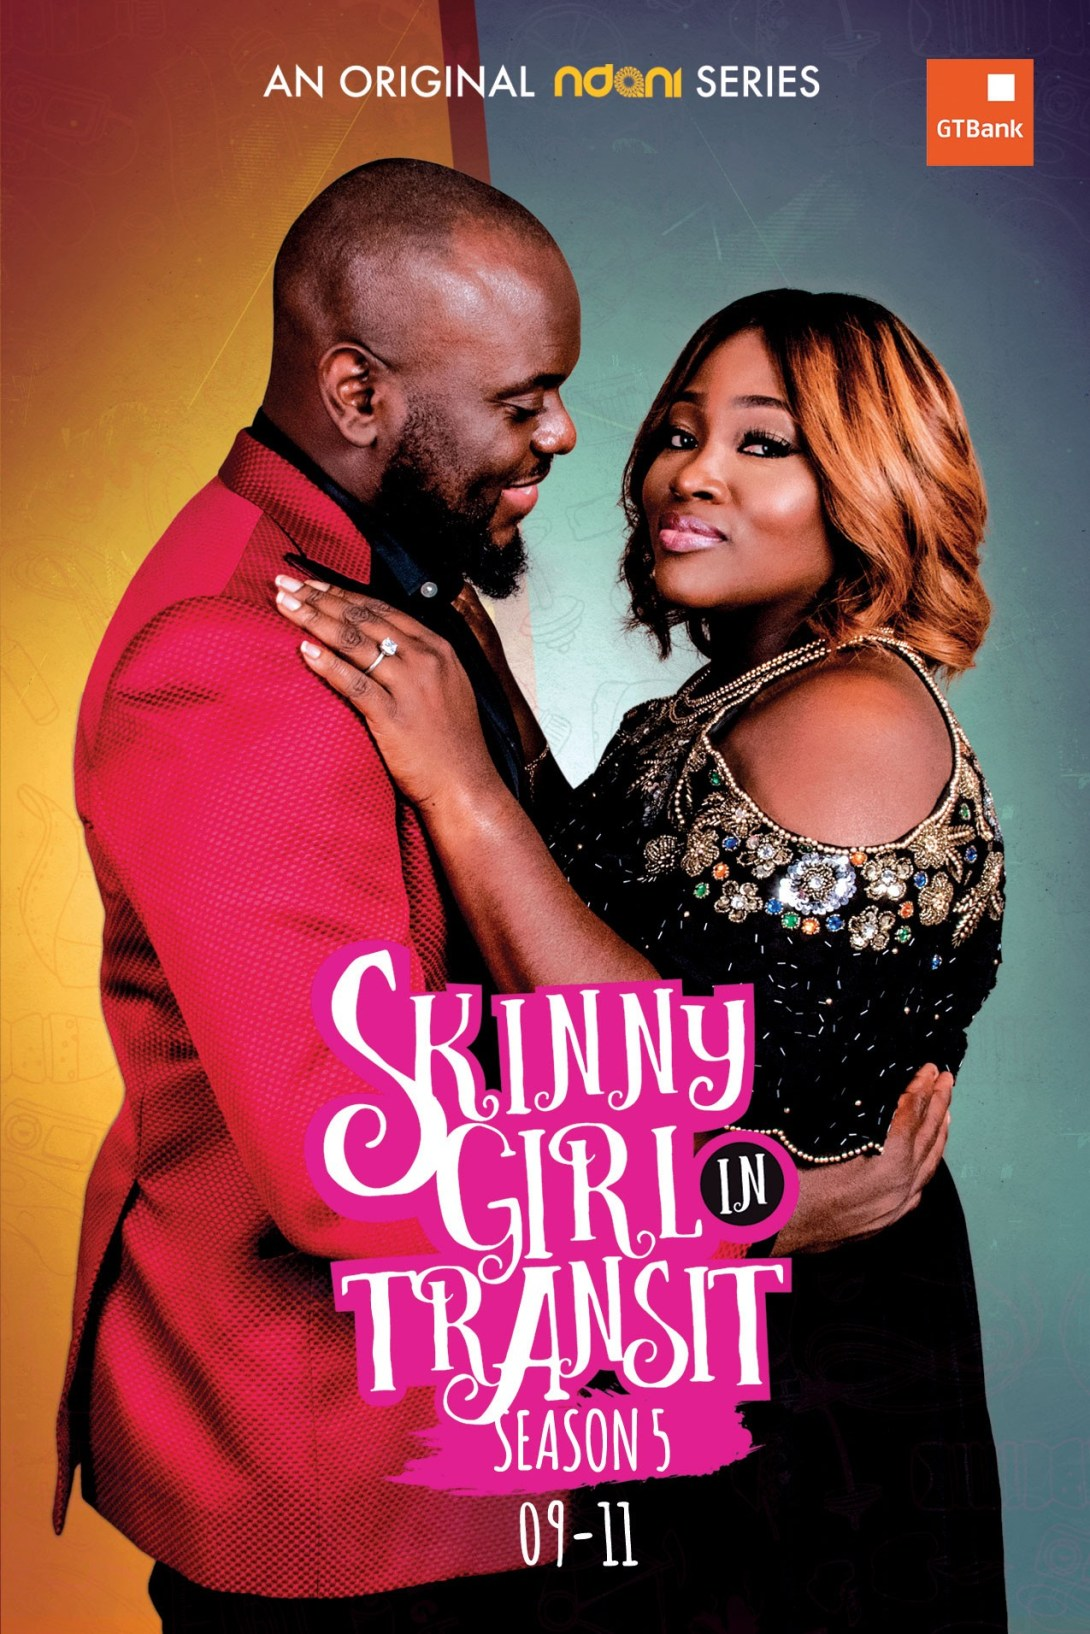 Ndanitvs Skinny Girl in Transit is back for Season 5 and its lit